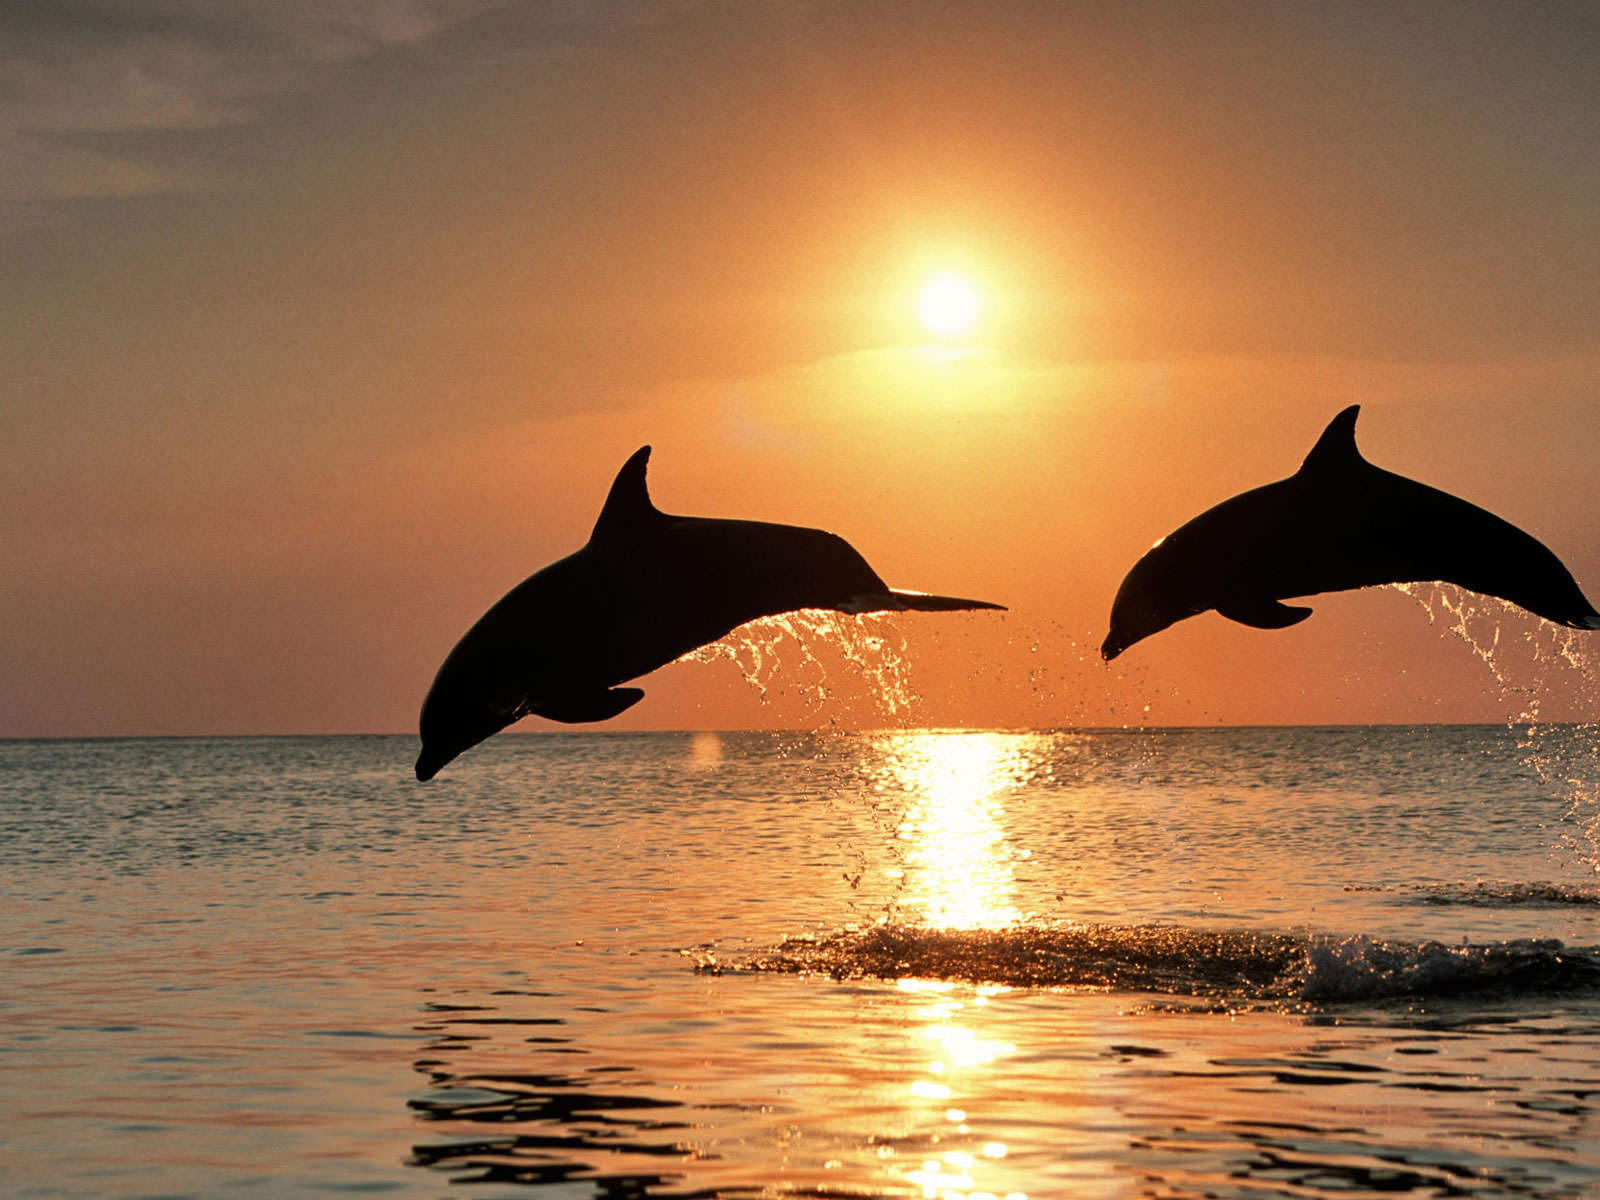 HD wallpapers Dolphins-jumping-at-sunset-1600x1200-1206058